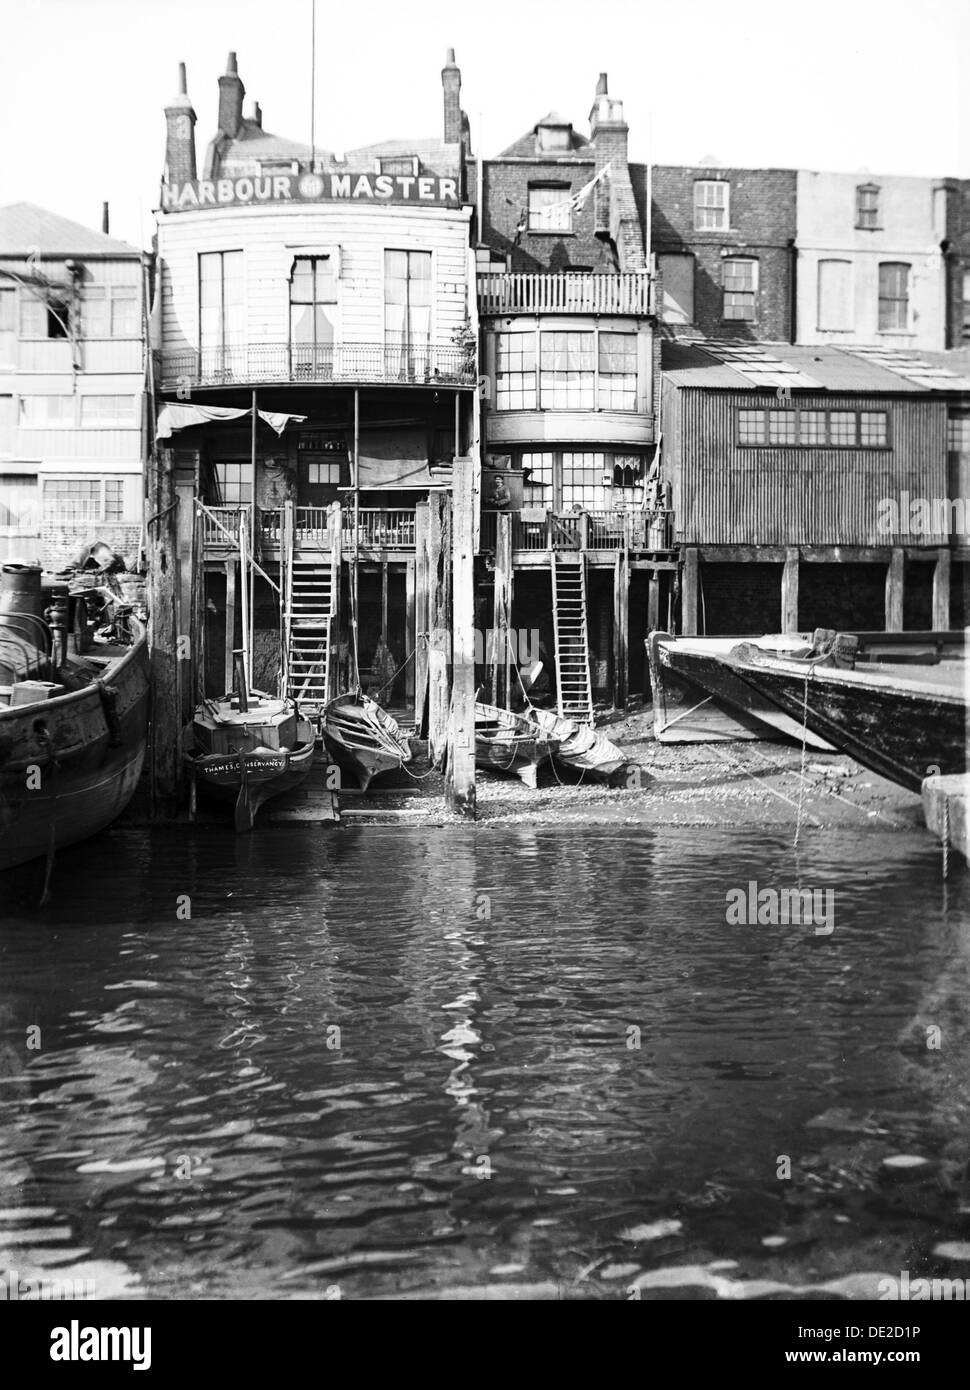 The Harbour Master's office at 74 Narrow Street, Limehouse, London, c1905. - Stock Image